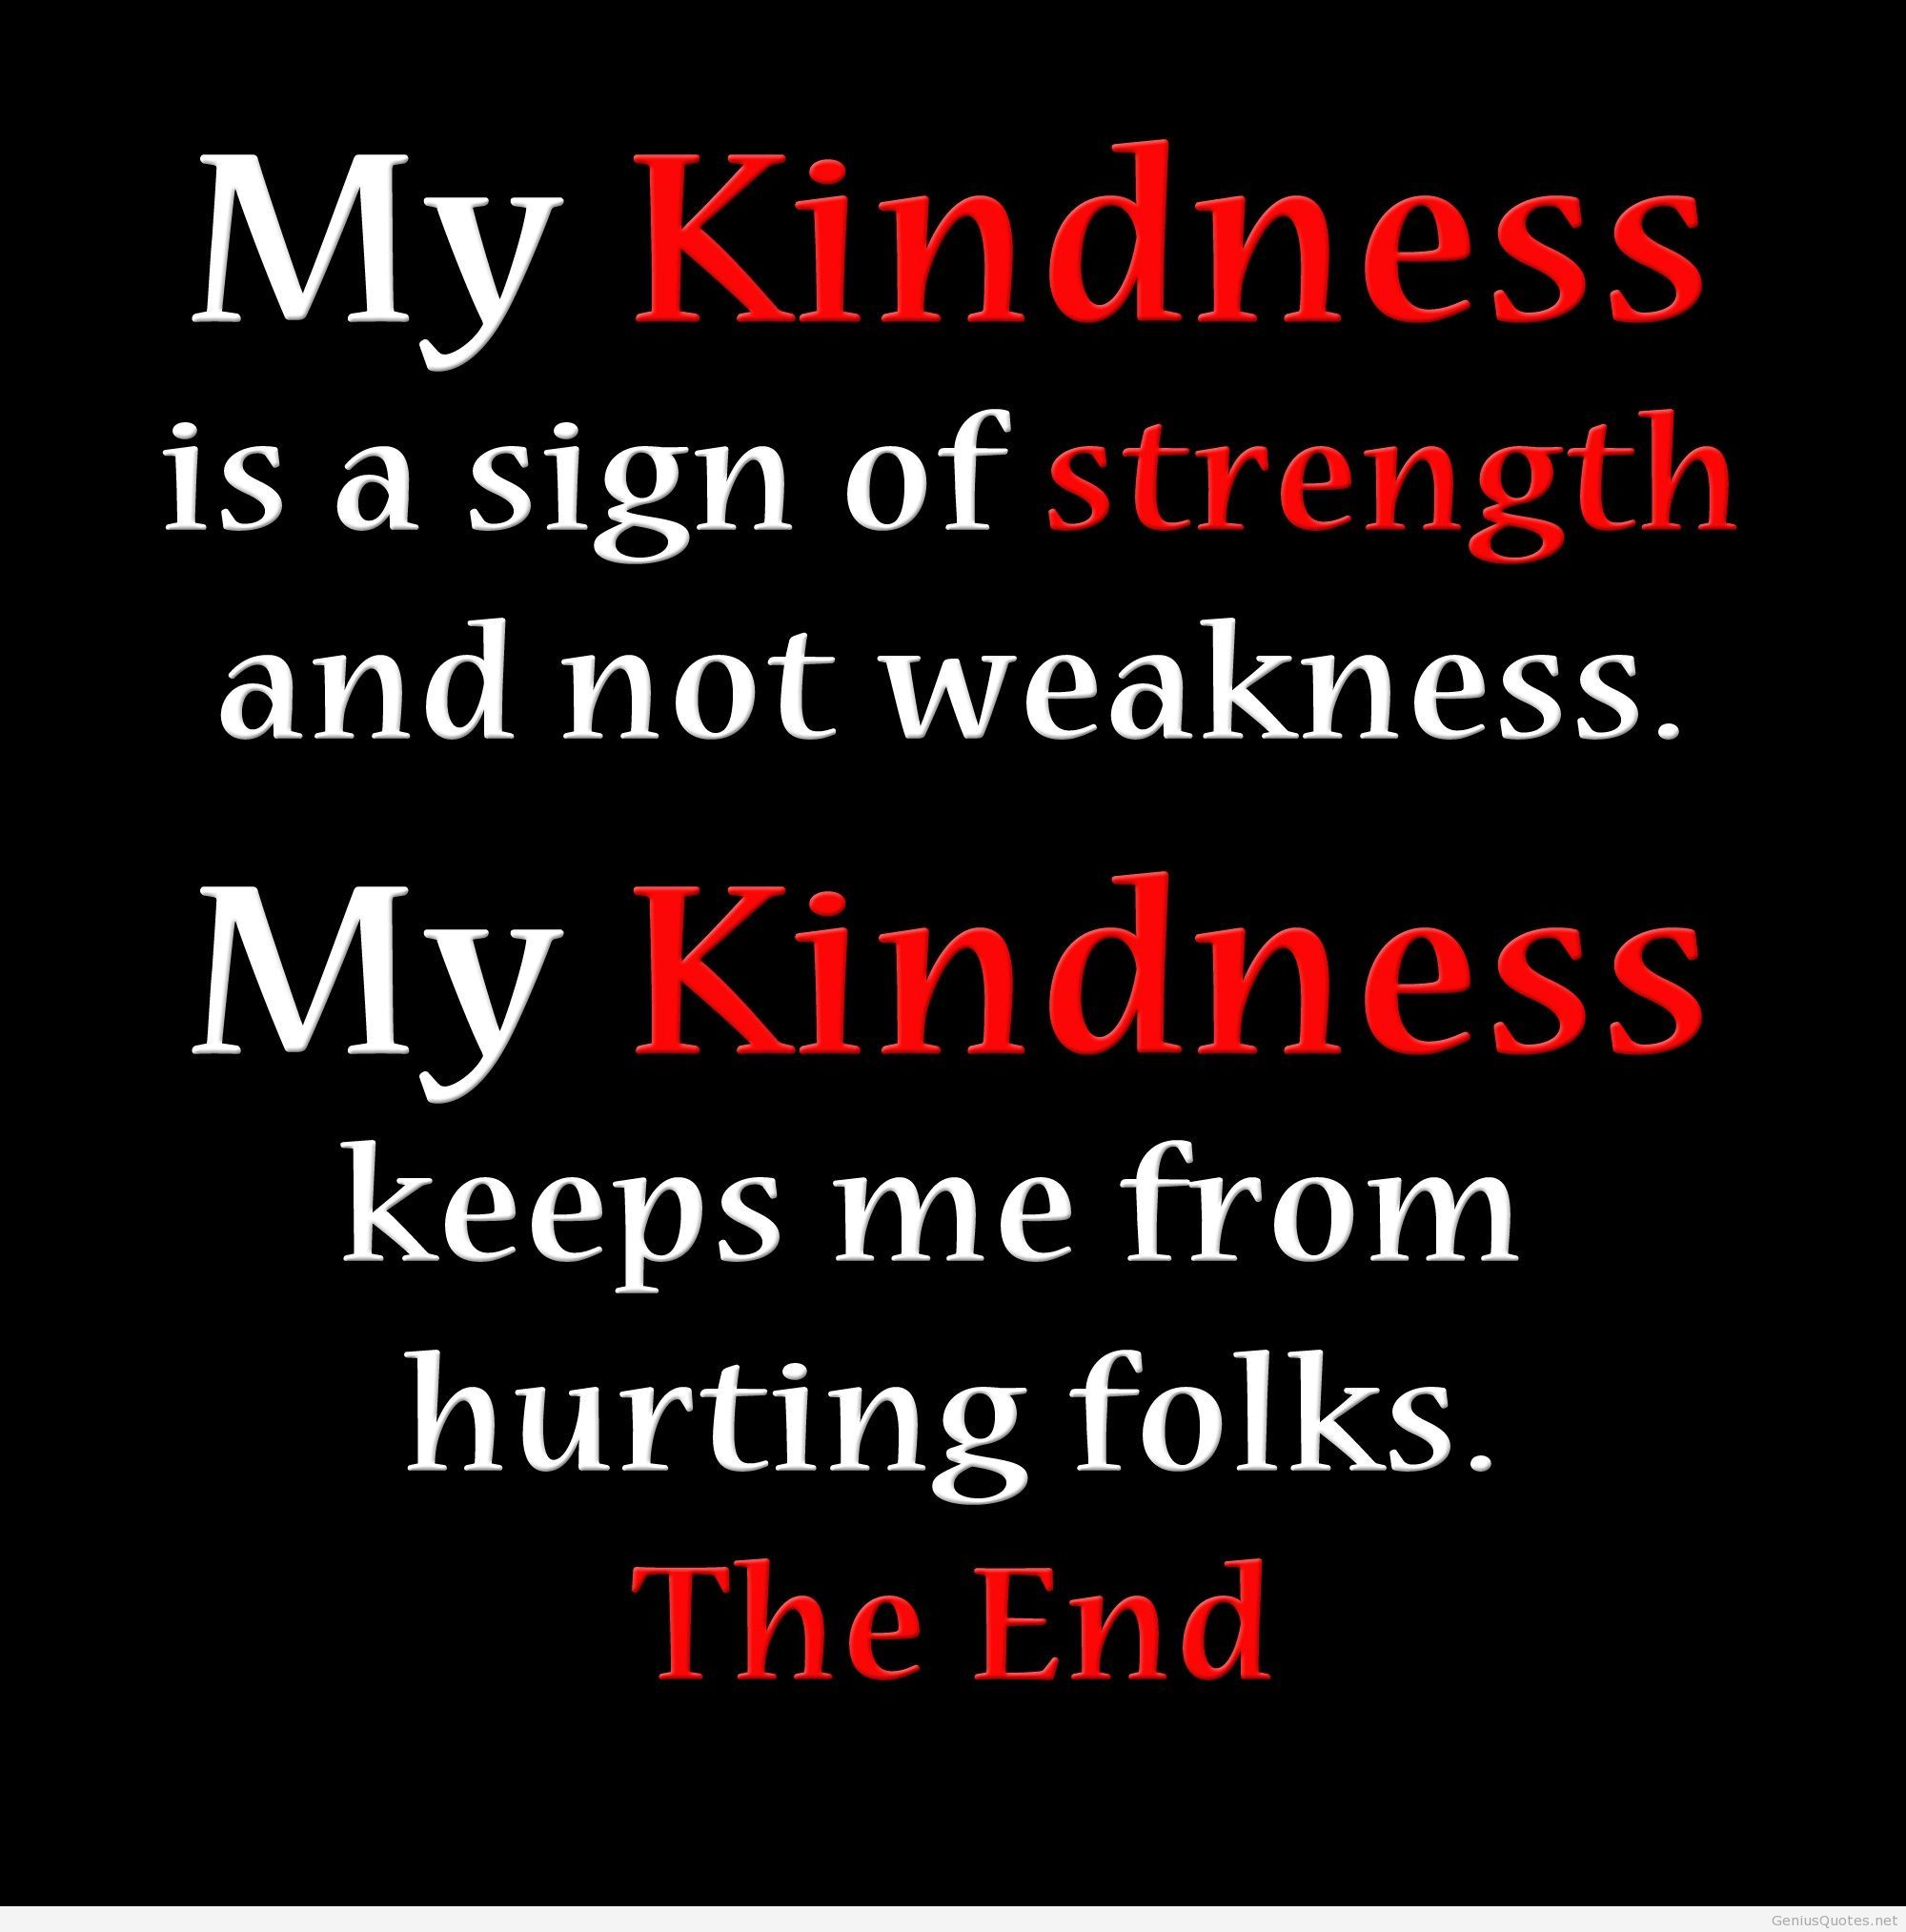 quotes about strength from weakness quotes is a sign of strength and not weakness my kindness keeps me from hurting folks